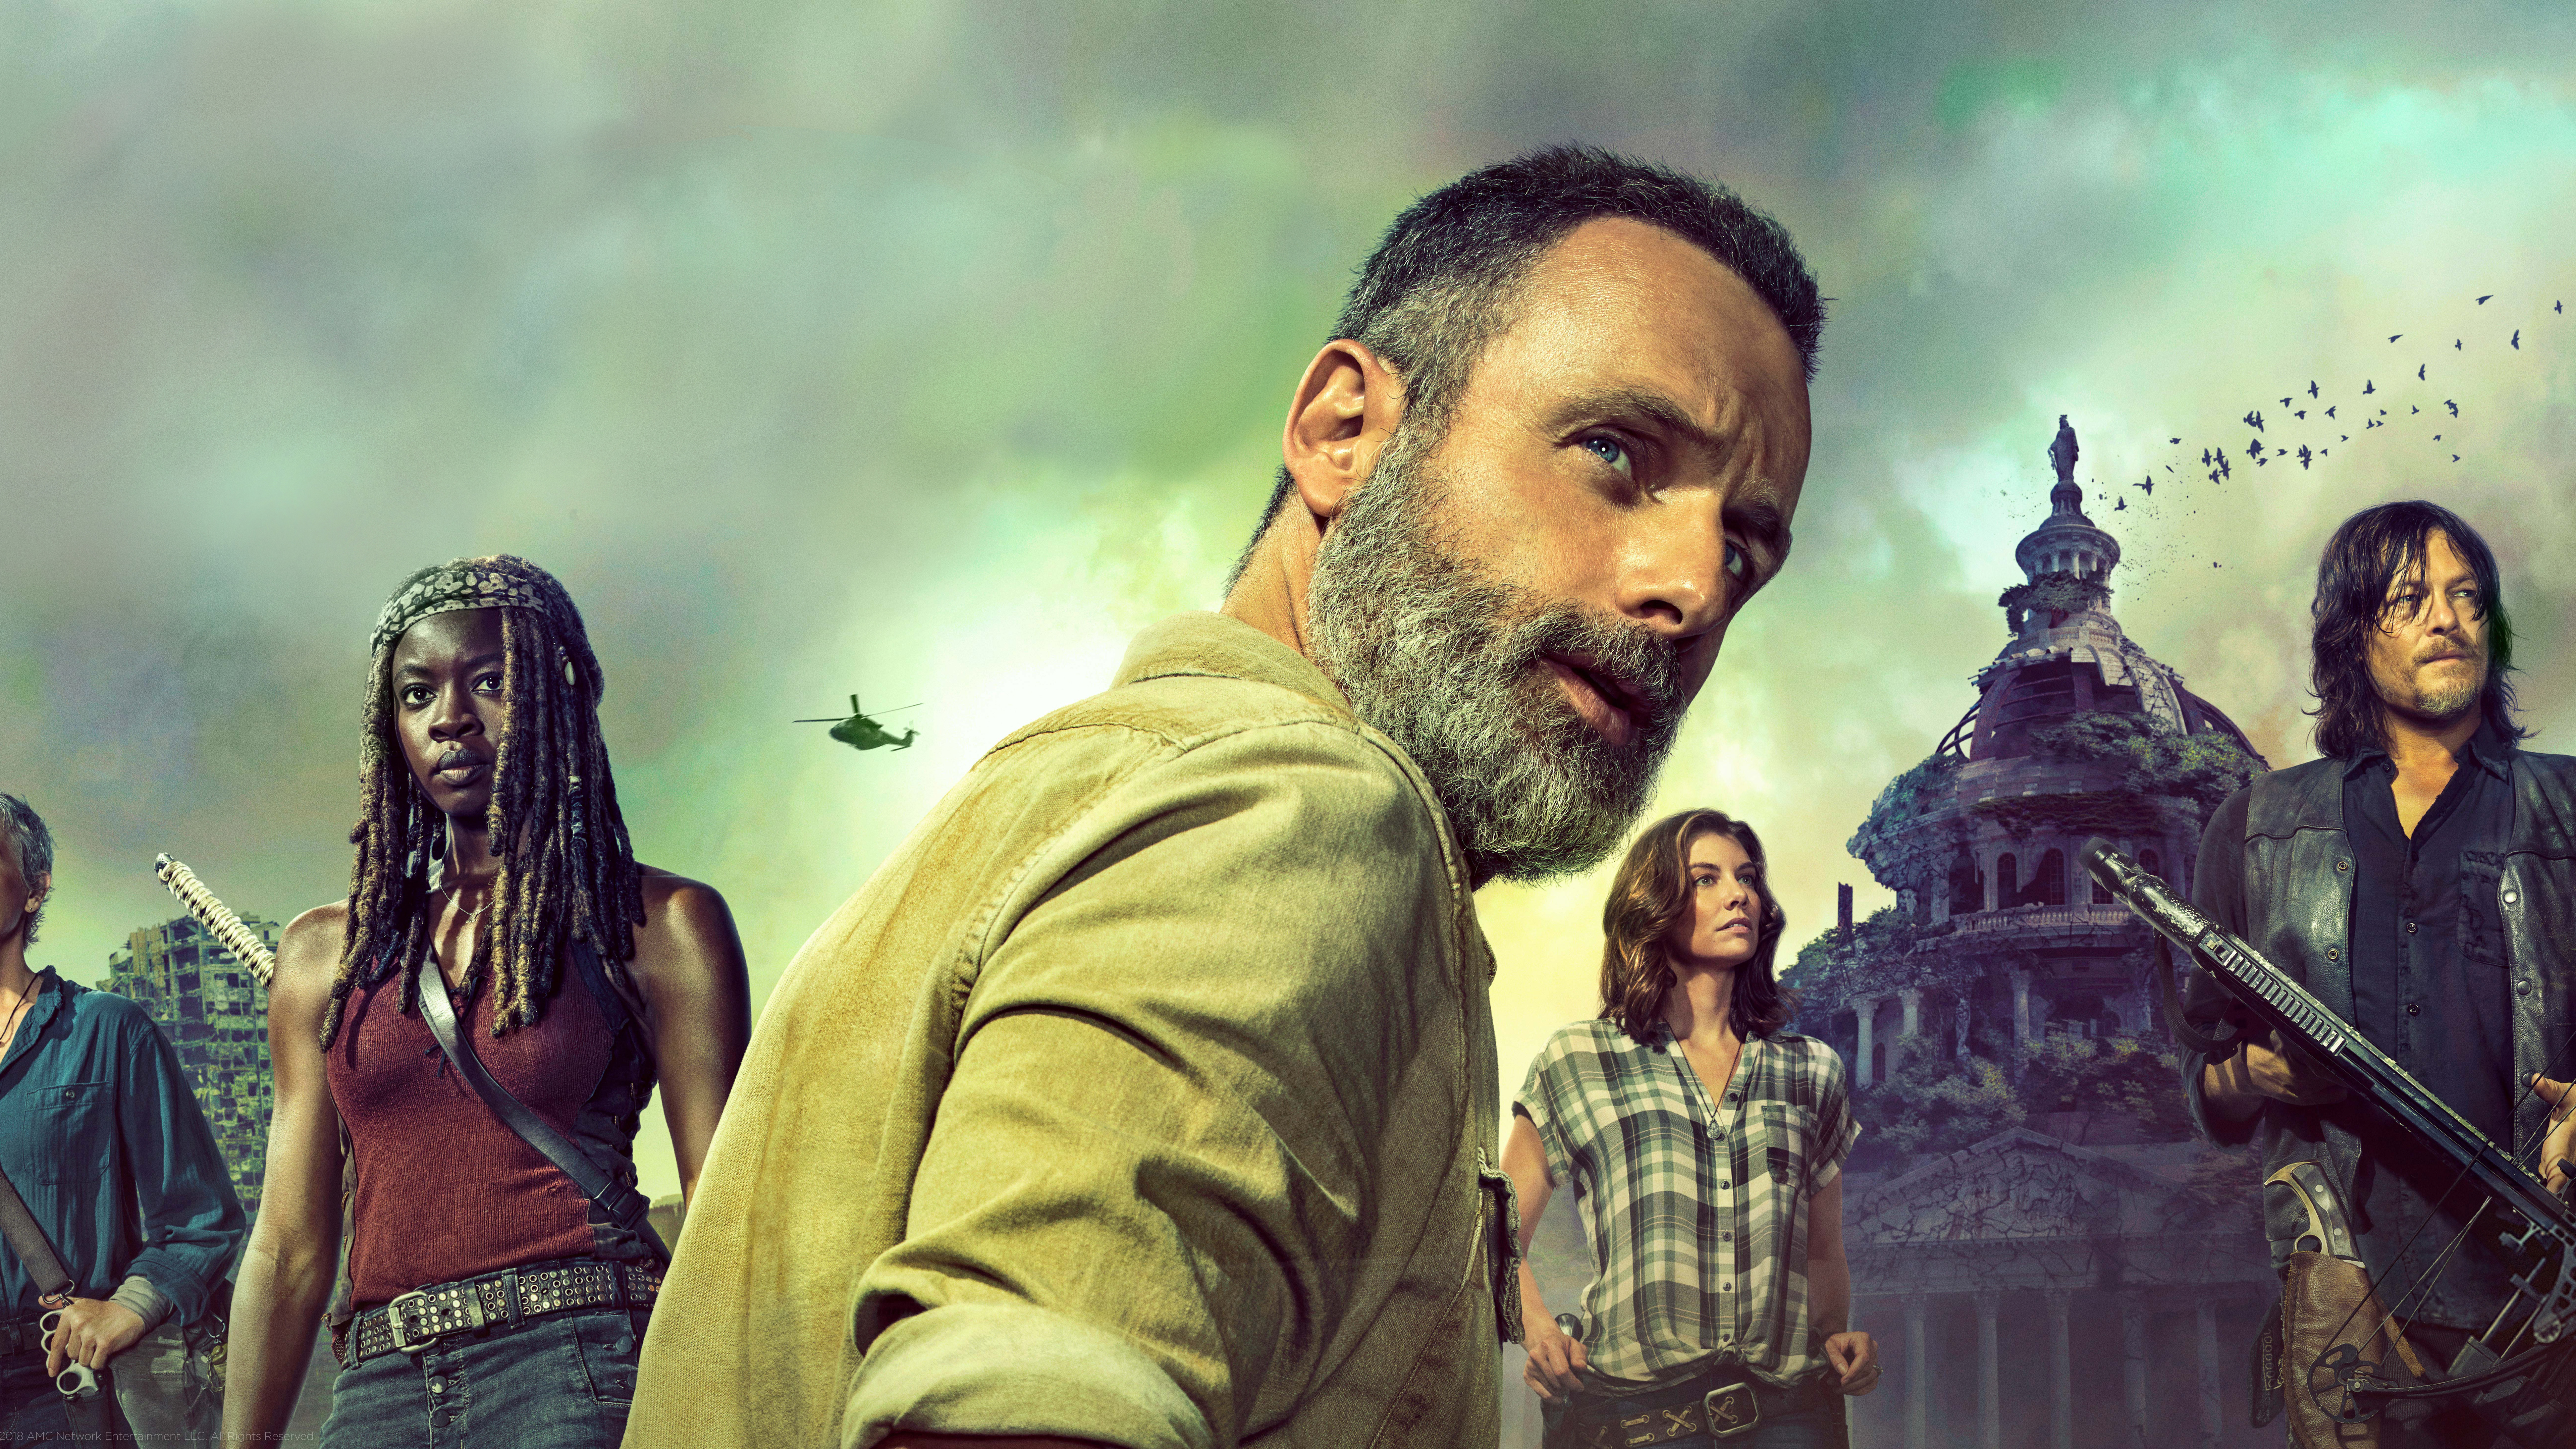 7680x4320 The Walking Dead Season 9 2018 8k Hd 4k Wallpapers Images